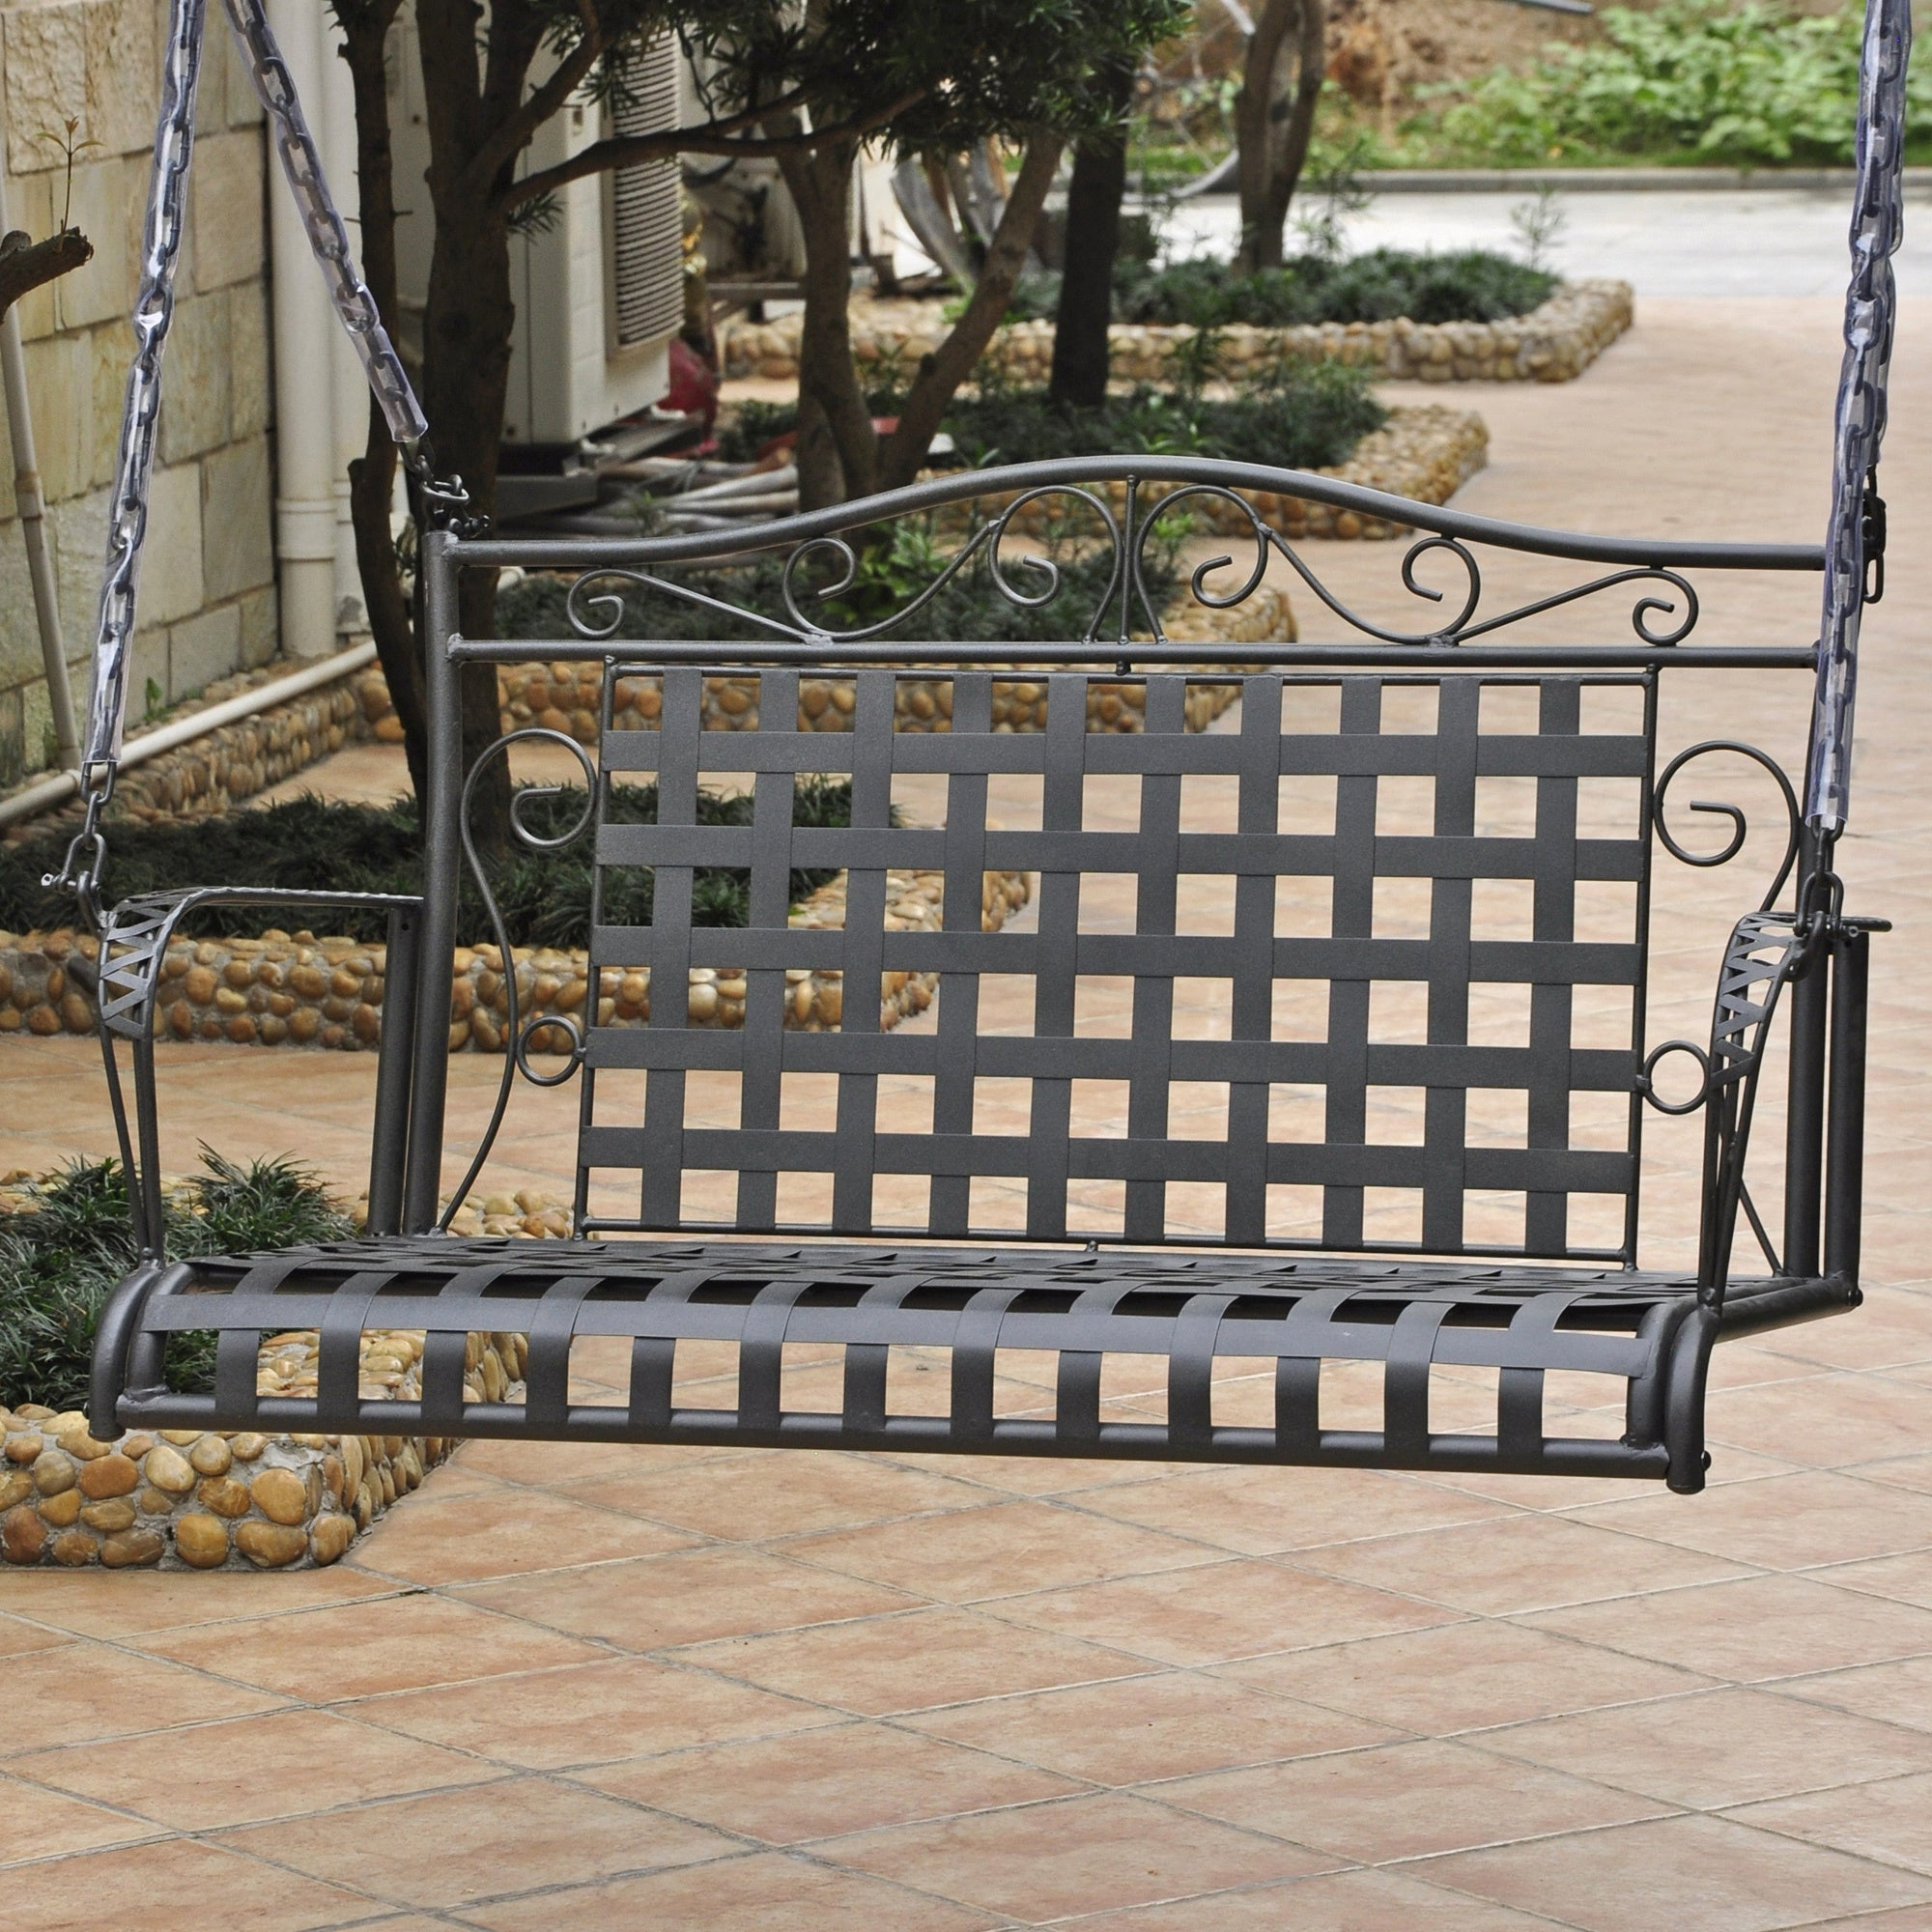 1 Person Antique Black Iron Outdoor Swings Pertaining To 2020 International Caravan Mandalay Iron Patio Swing (View 6 of 25)